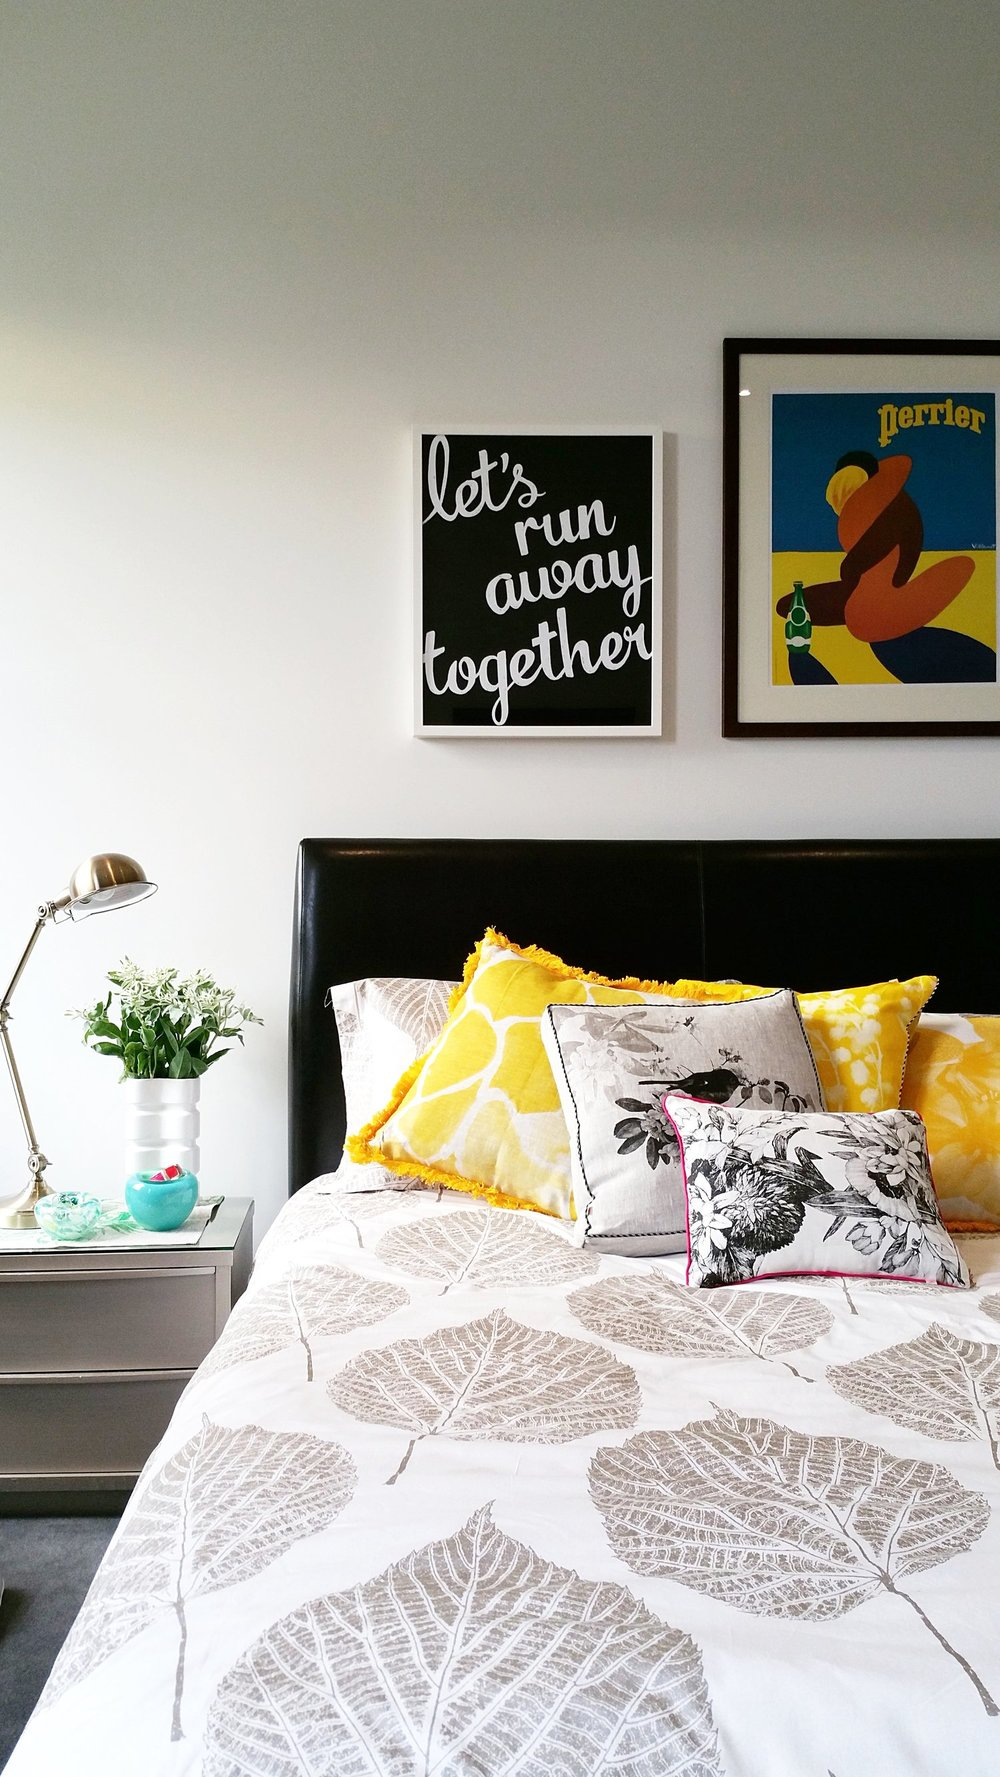 Bonnie & Neil hand printed cushions - add a gentle splash of pattern and colourto the main bedroom.